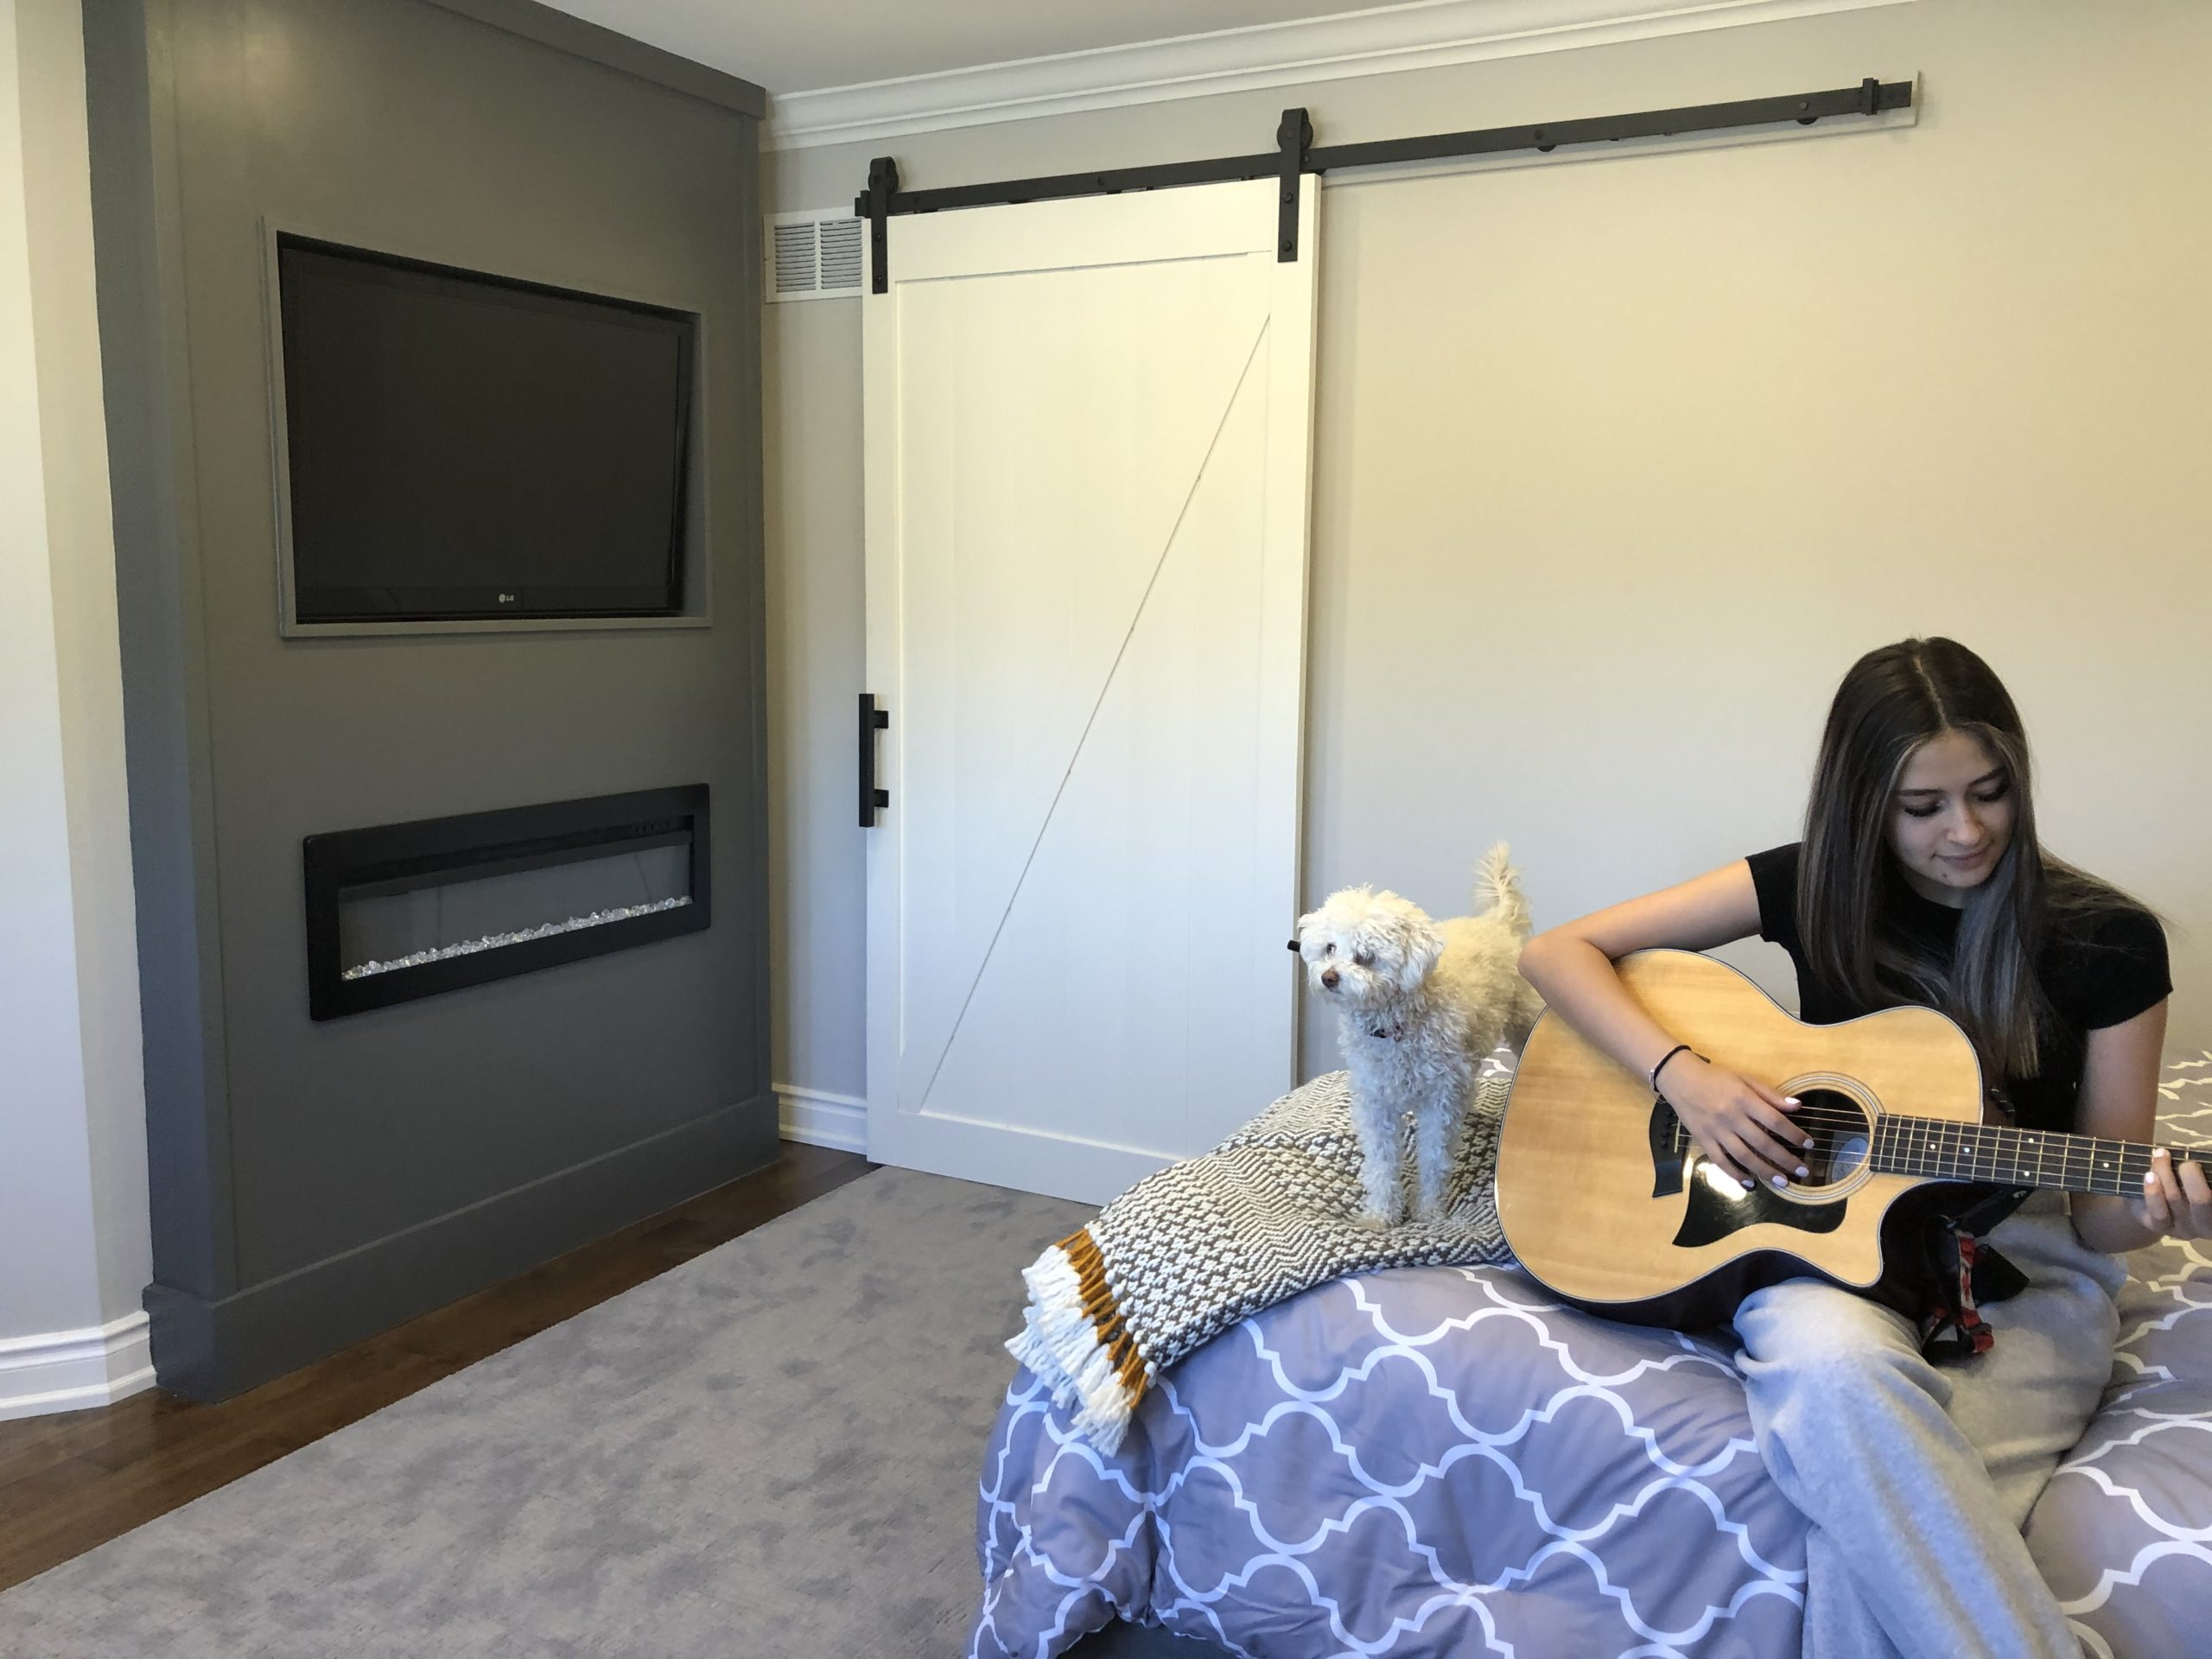 White Barn Door behind teen girl sitting with a small white dog playing guitar on her bed.